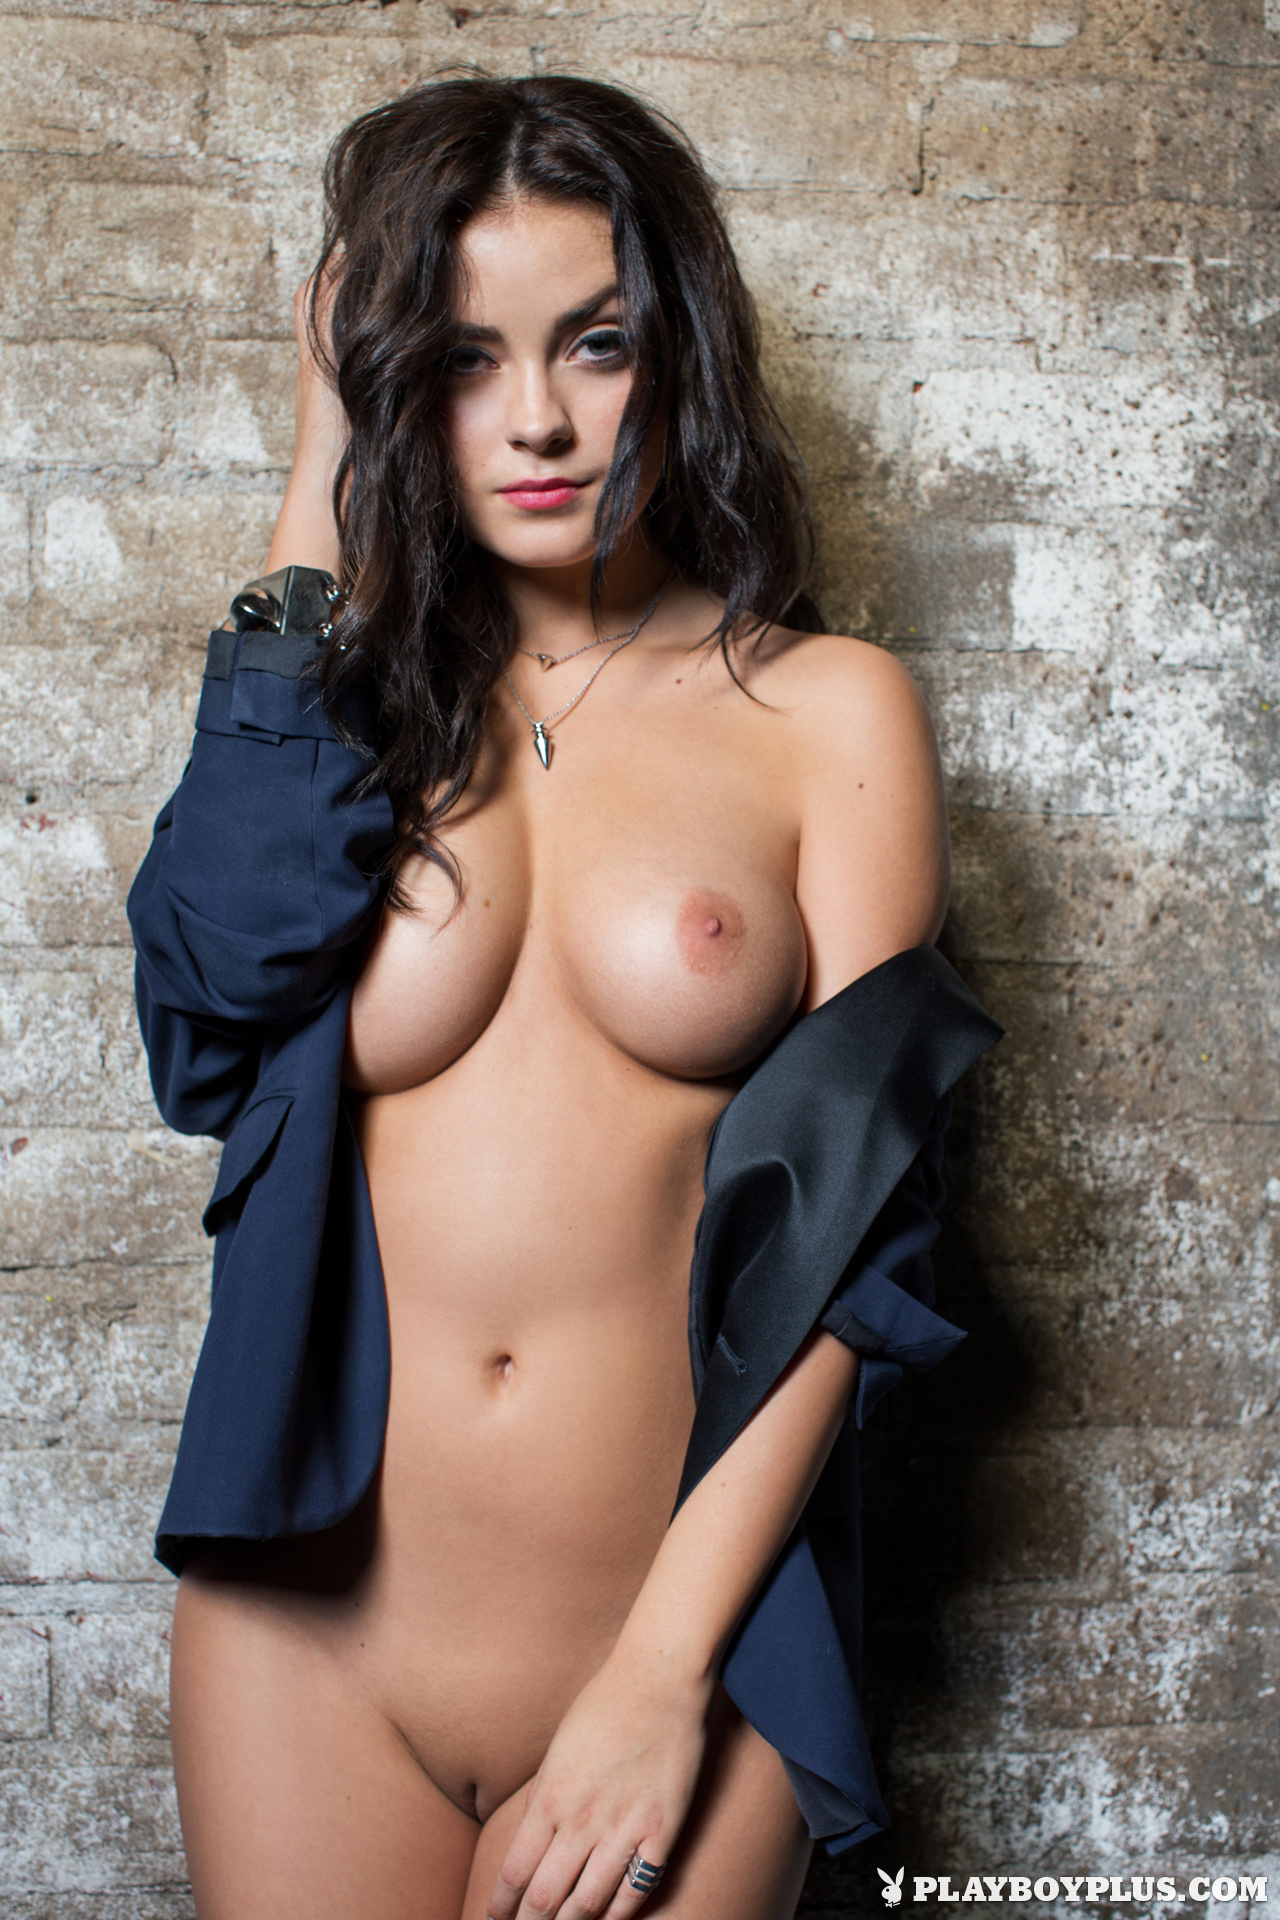 Naked pictures playboy